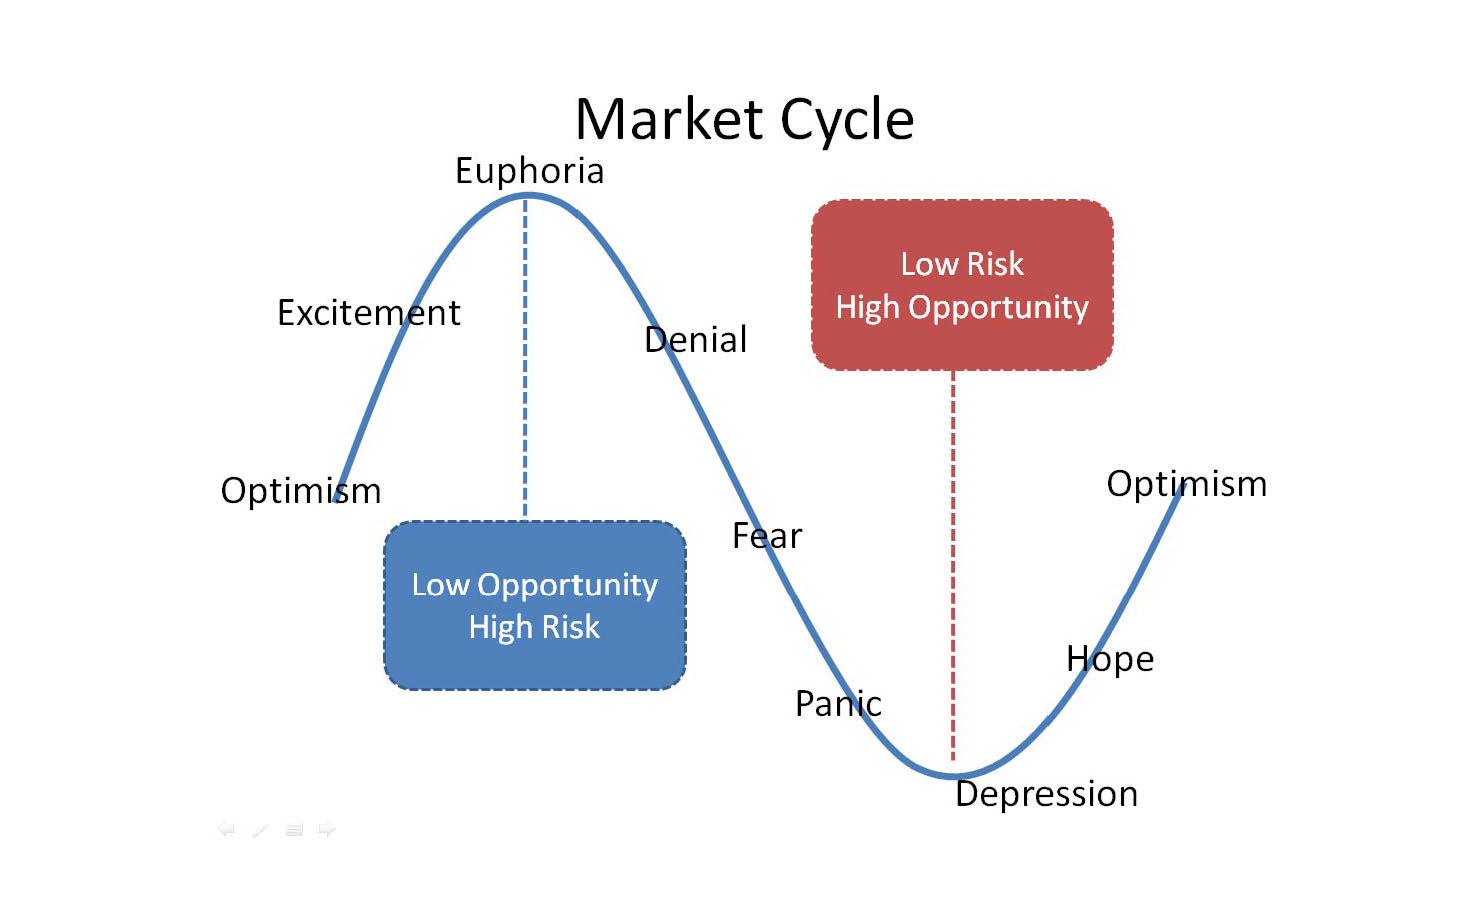 shipping market cycles A cyclical industry is sensitive to the business cycle you need to understand the various phases of the market cycle to avoid bubbles and make the best investments.